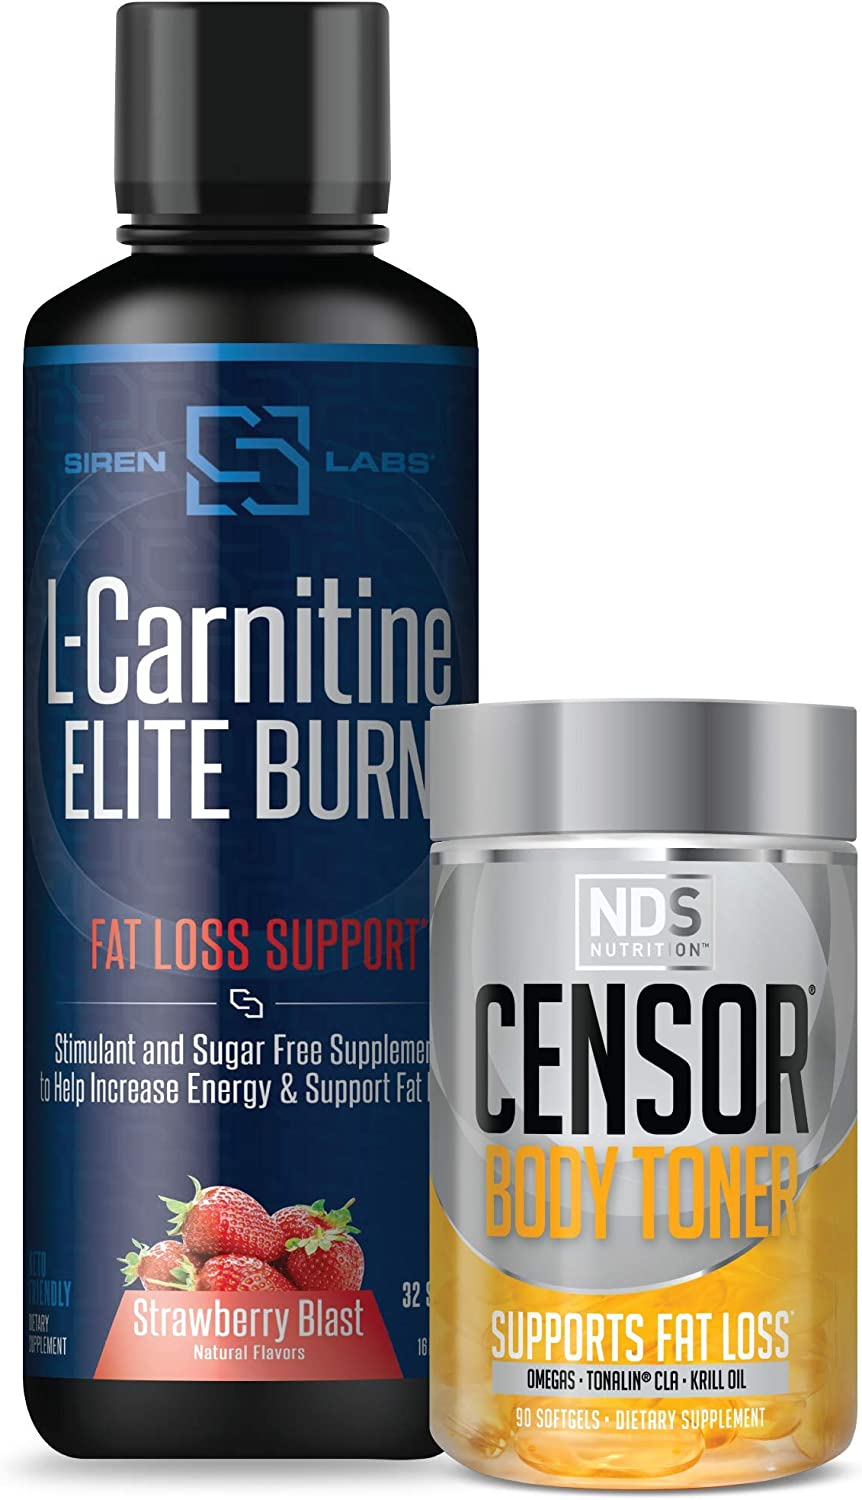 NDS Nutrition Censor-Fat Loss-Body Toner Sales for sale 5% OFF Softgels with 90 CLA